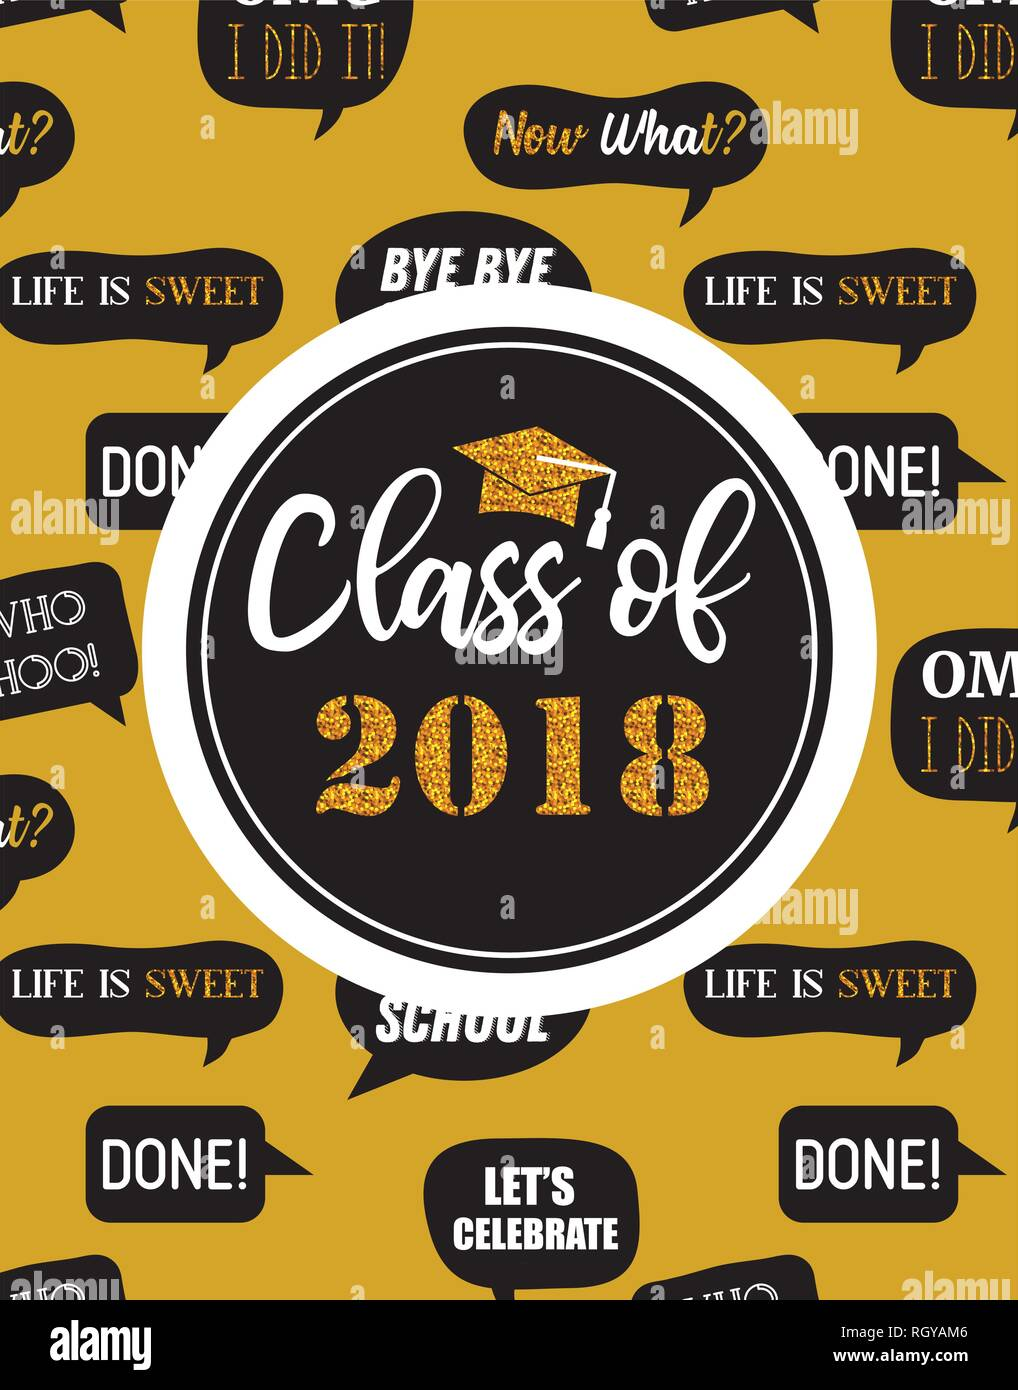 Graduation Class of 2018, party invitation, poster or banner template. vector illustration - Stock Image